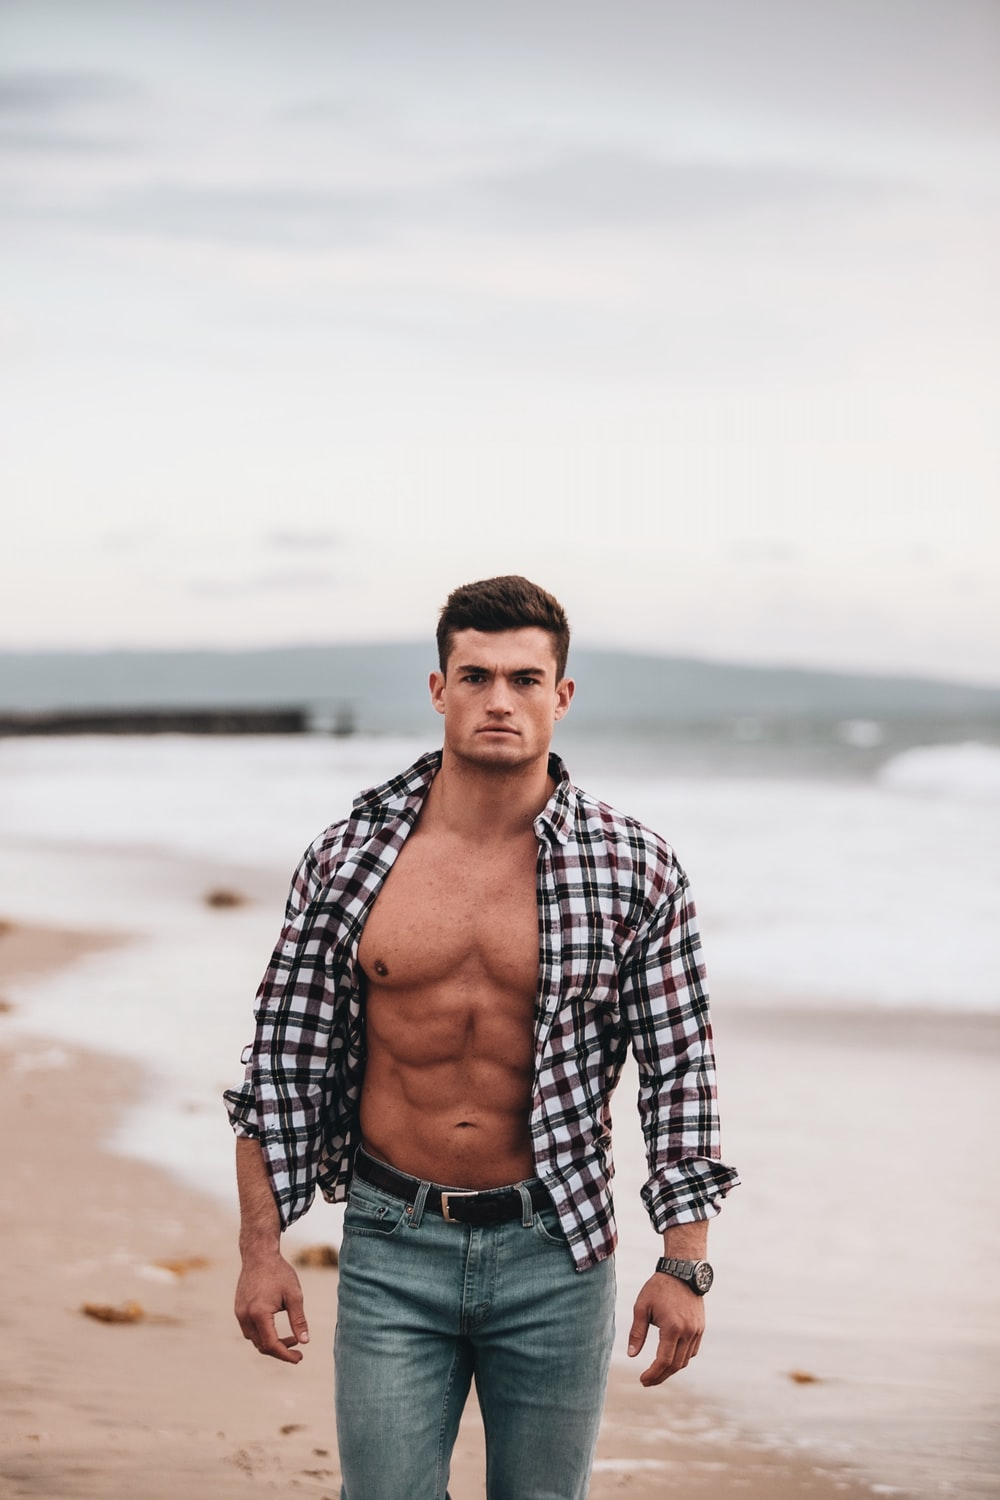 man in black and white plaid dress shirt standing on beach during daytime